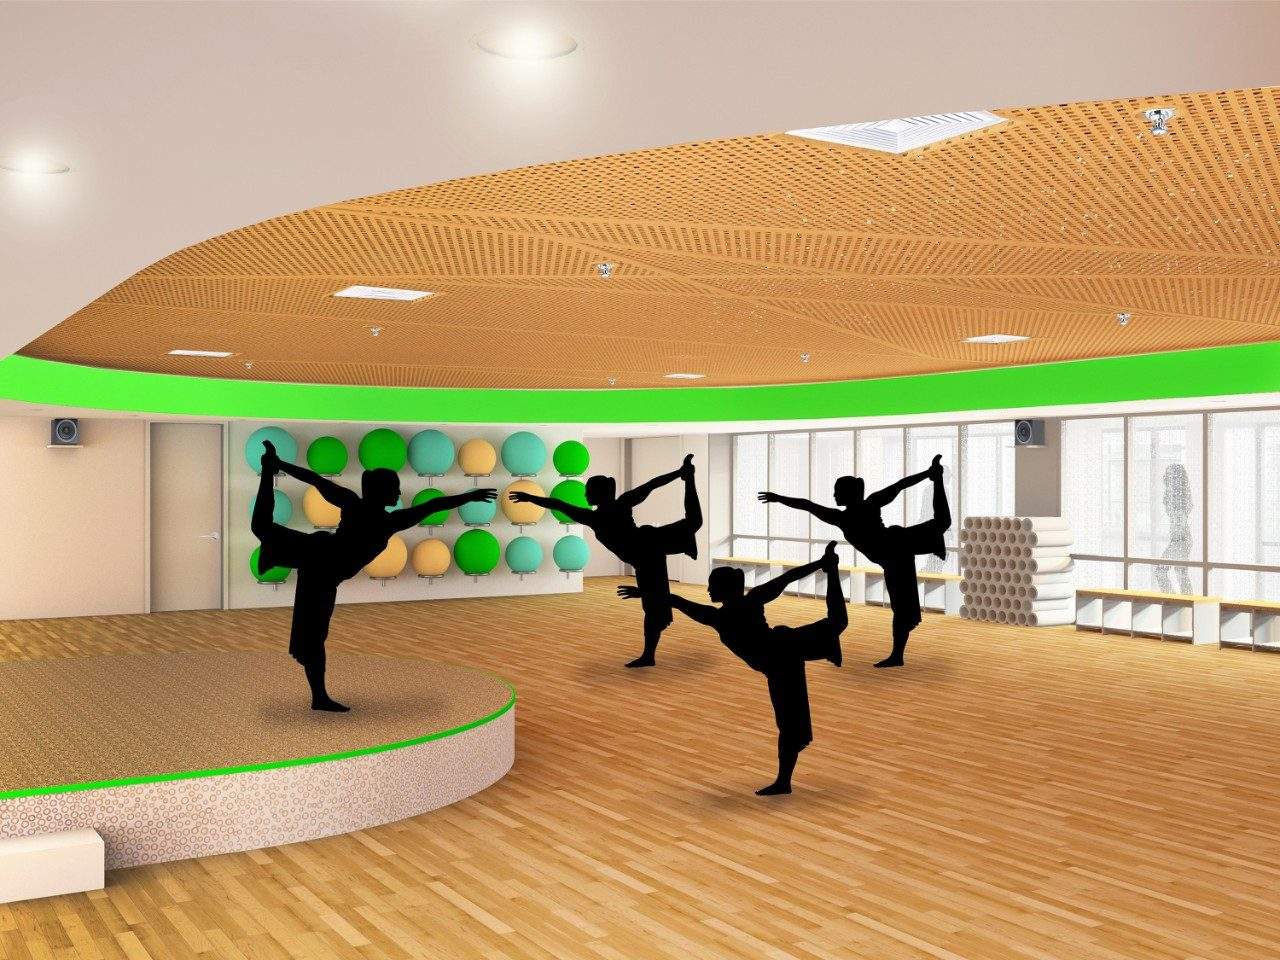 A Digital Rendering On Women Practicing Yoga In Fitness Studio With Blonde Wood Floors And